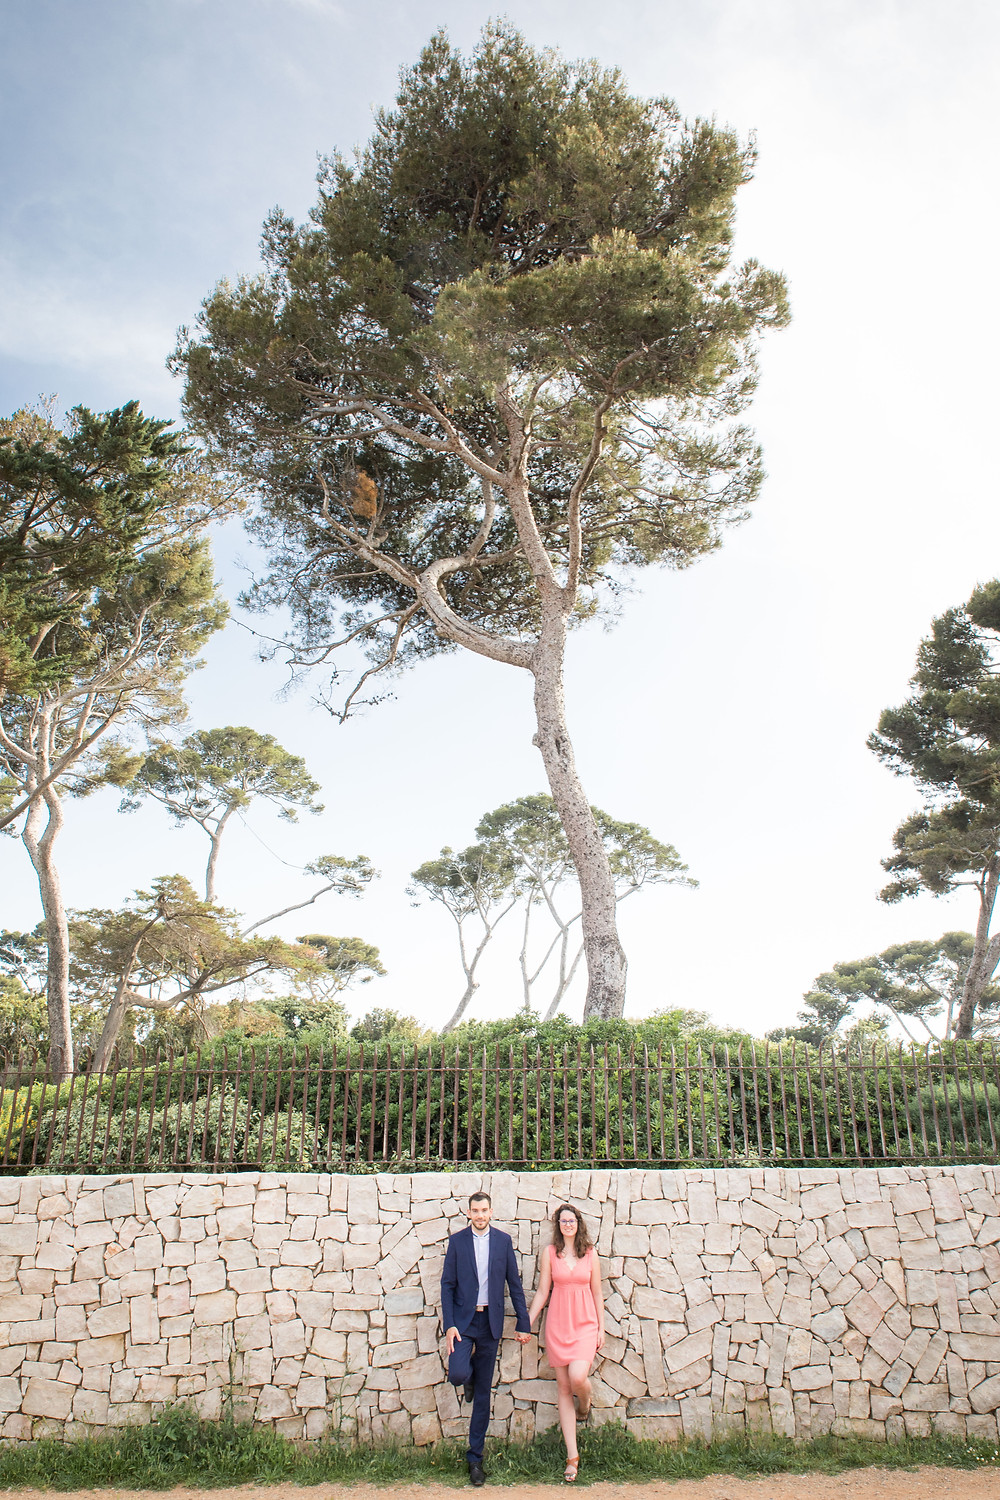 Séance photo engagement - Cap d'Antibes